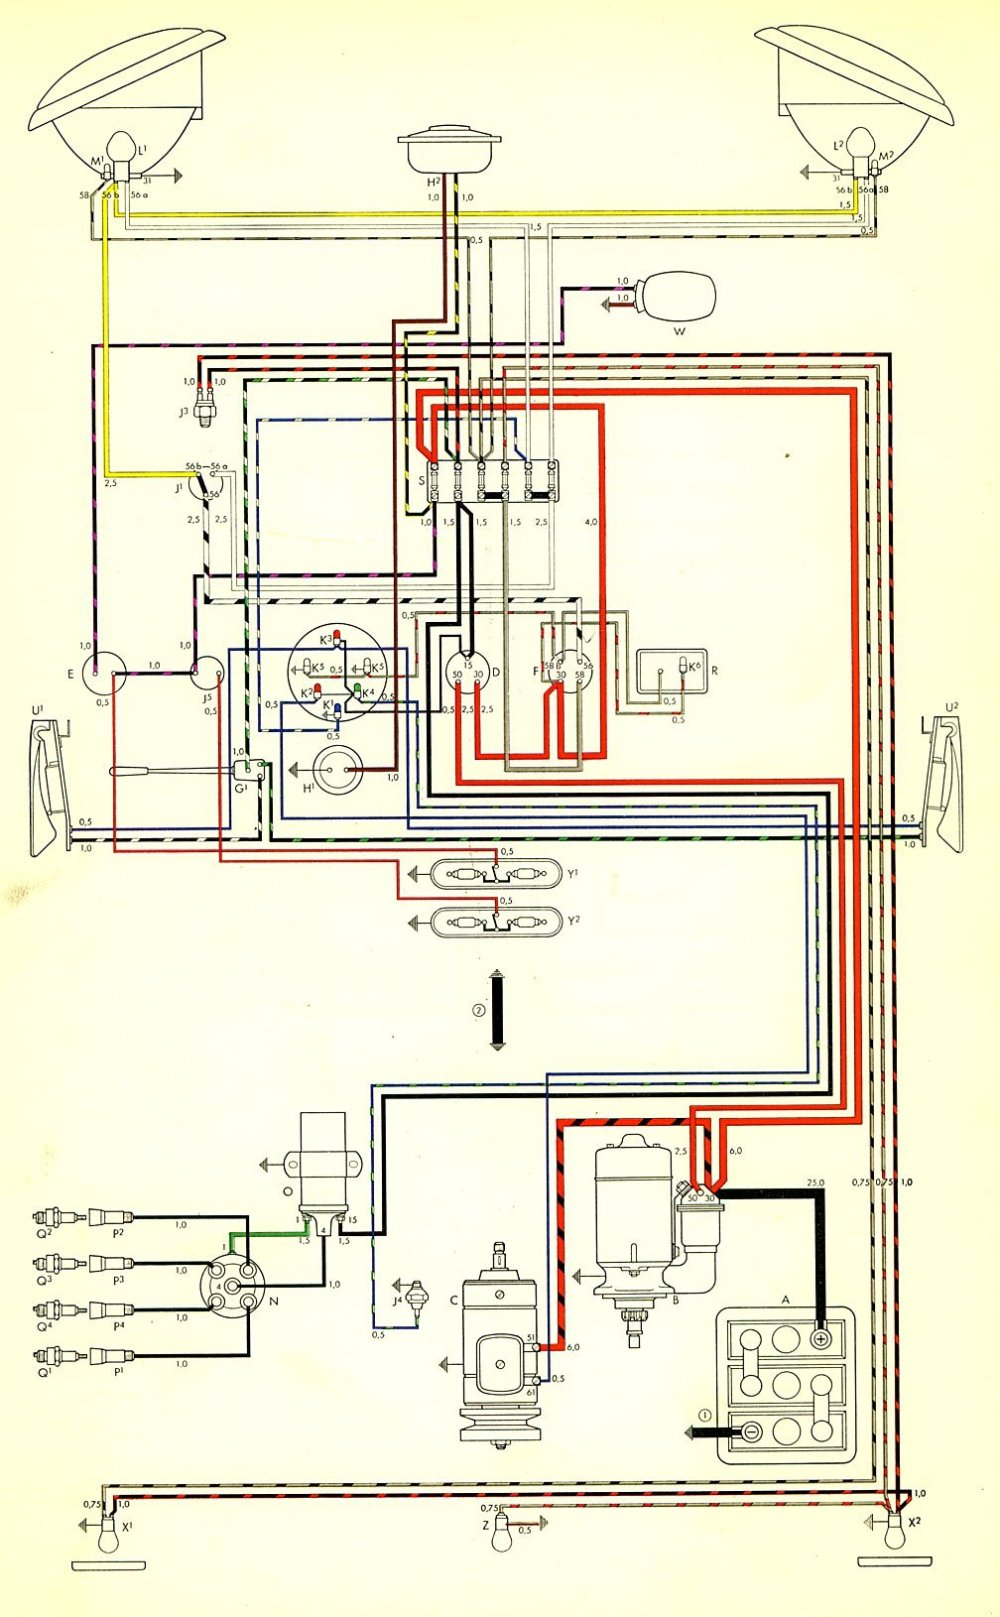 medium resolution of 1968 chrysler newport wiring diagram schematic wiring library rh 94 insidestralsund de 1972 chrysler newport 1966